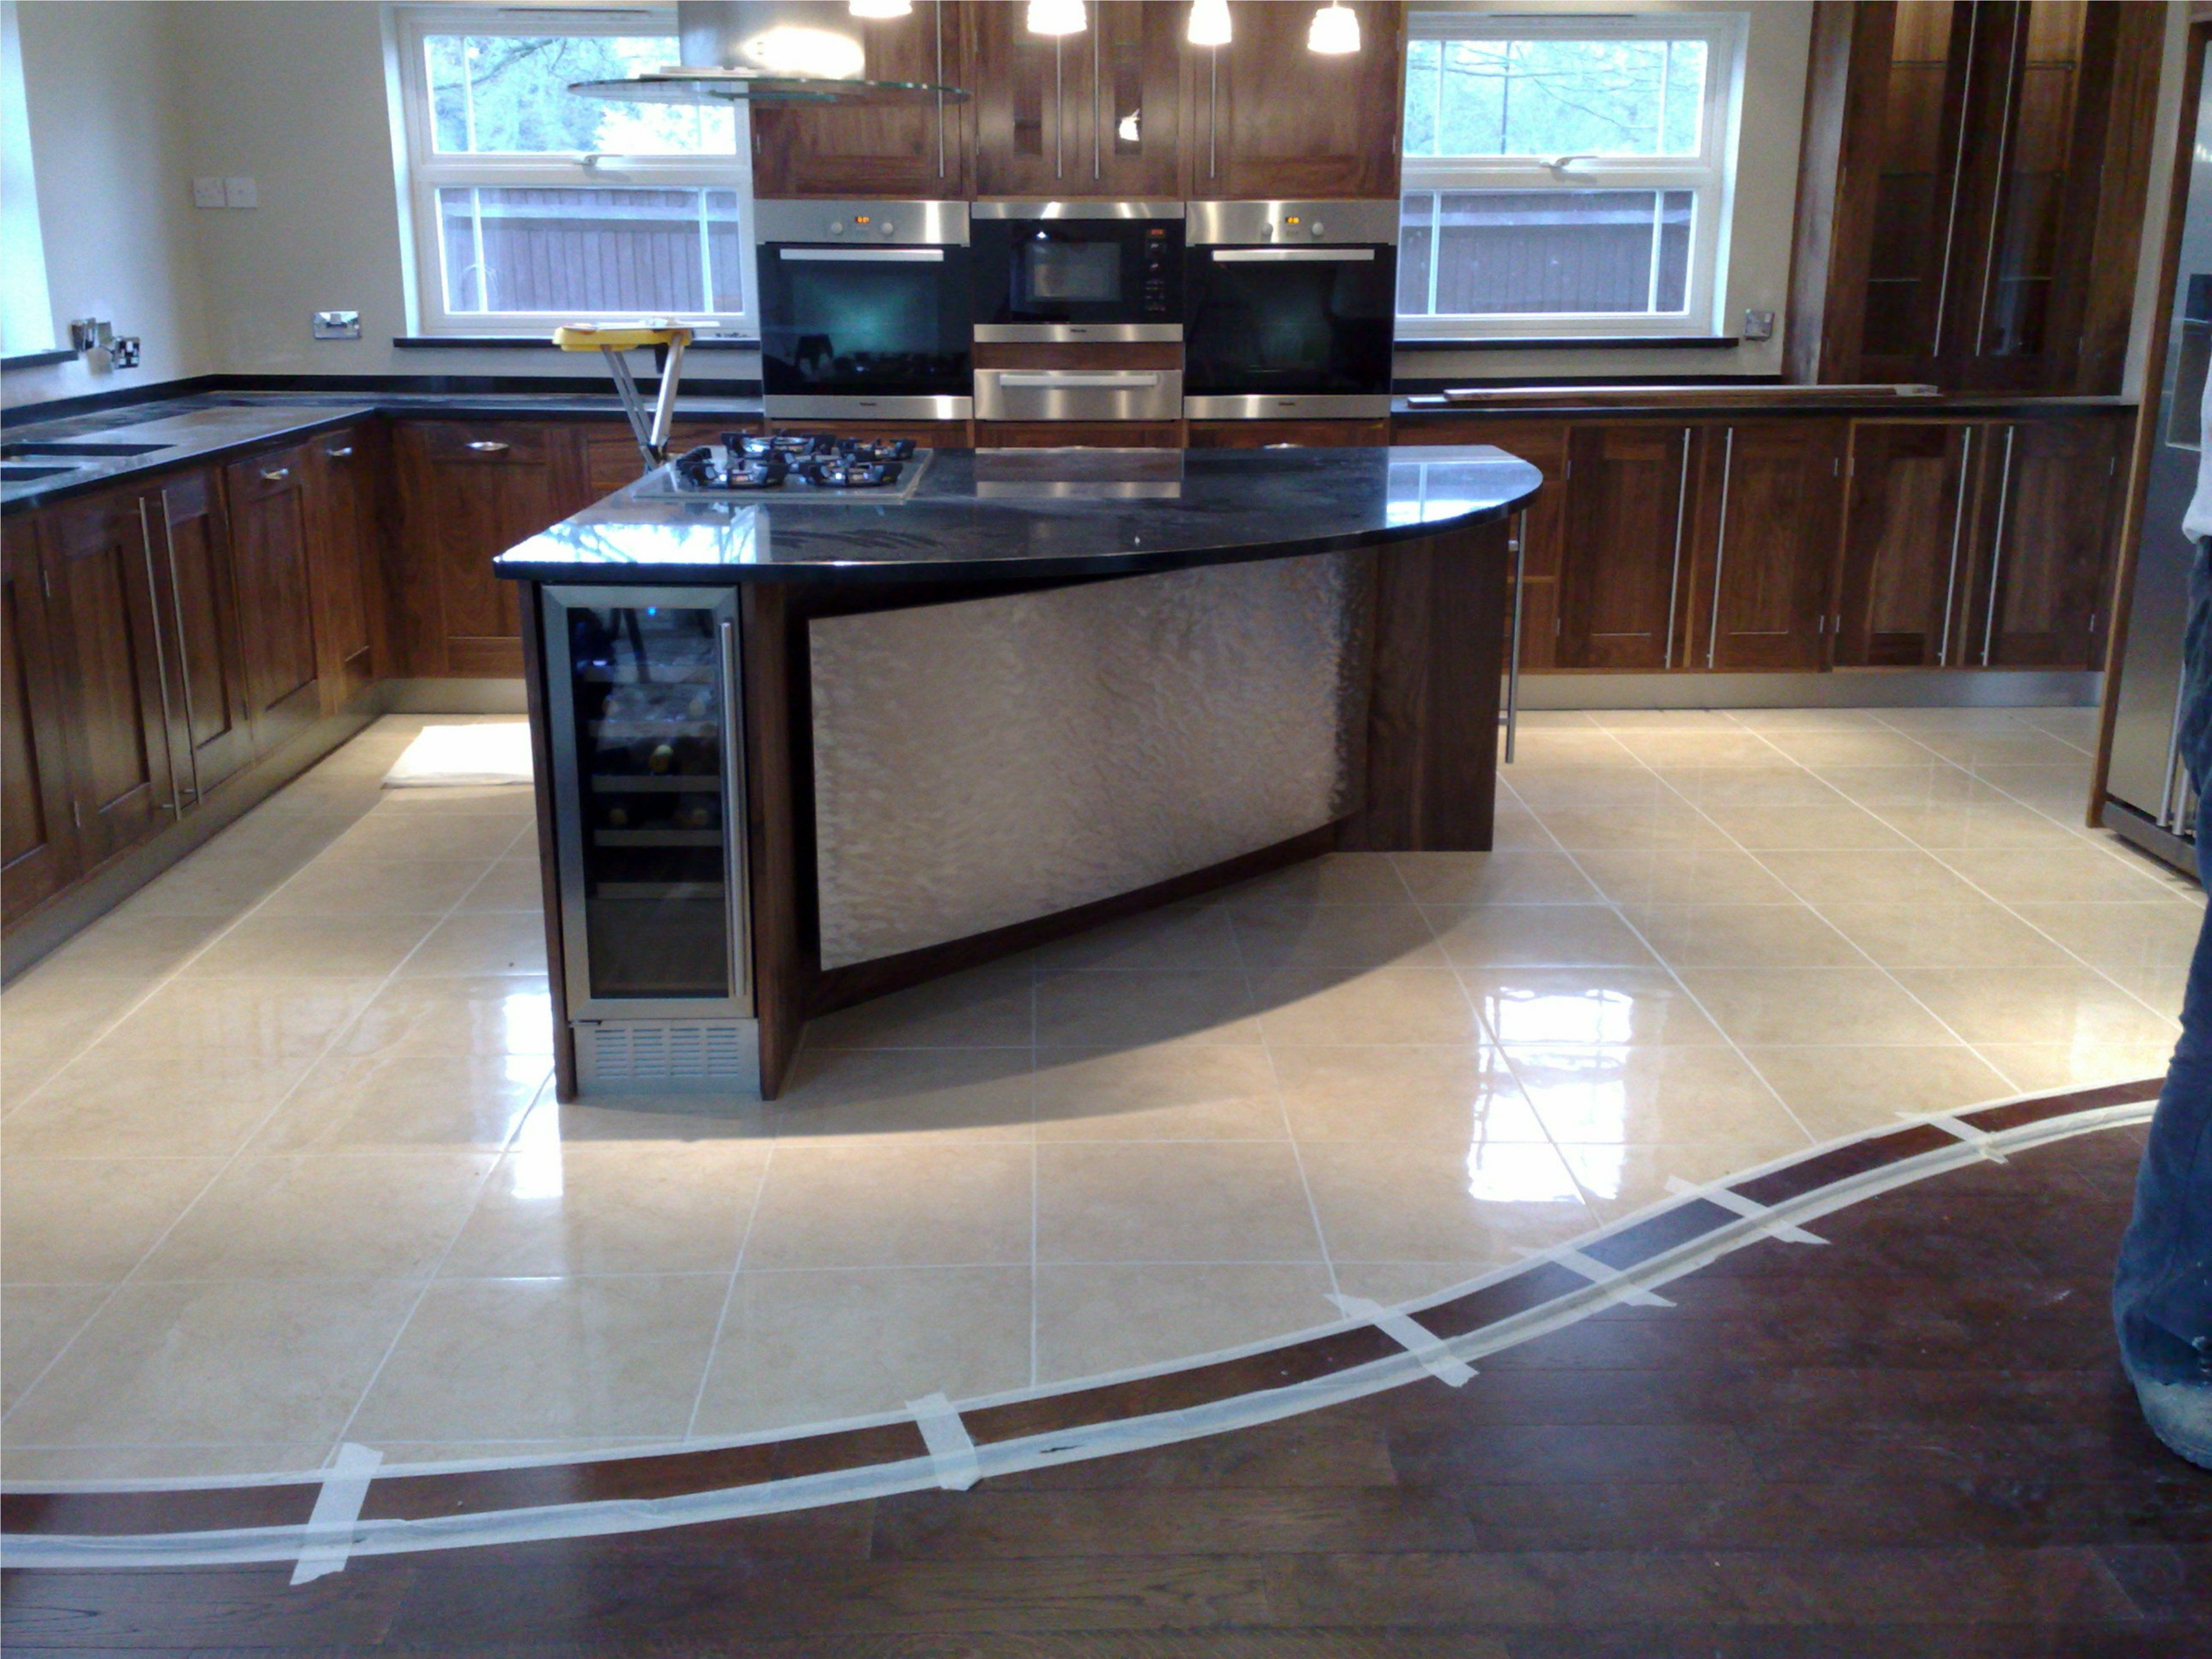 We love the transition between the polished porcelain tiles and kitchen floor wonderful porcelain tile kitchen floor we love the transition between the polished porcelain tiles and wooden floor in this kitchen dailygadgetfo Image collections